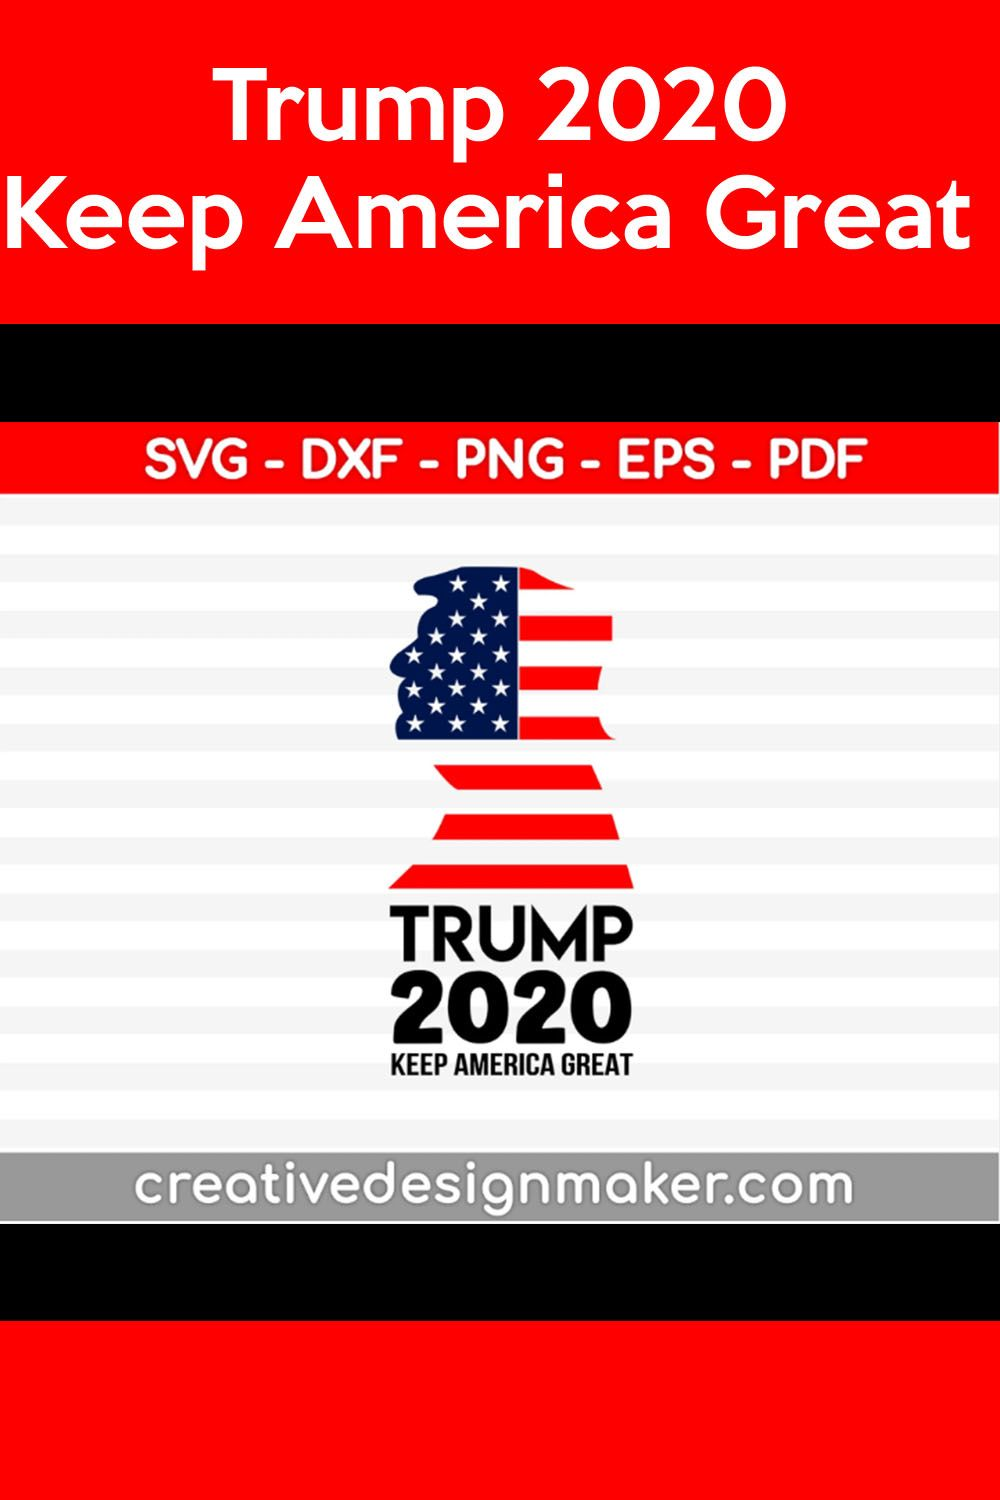 Trump 2020 Keep America Great Svg Dxf Png Eps Pdf File For Cameo And Printable Files In 2020 Svg Cricut Projects Vinyl Trump 2020